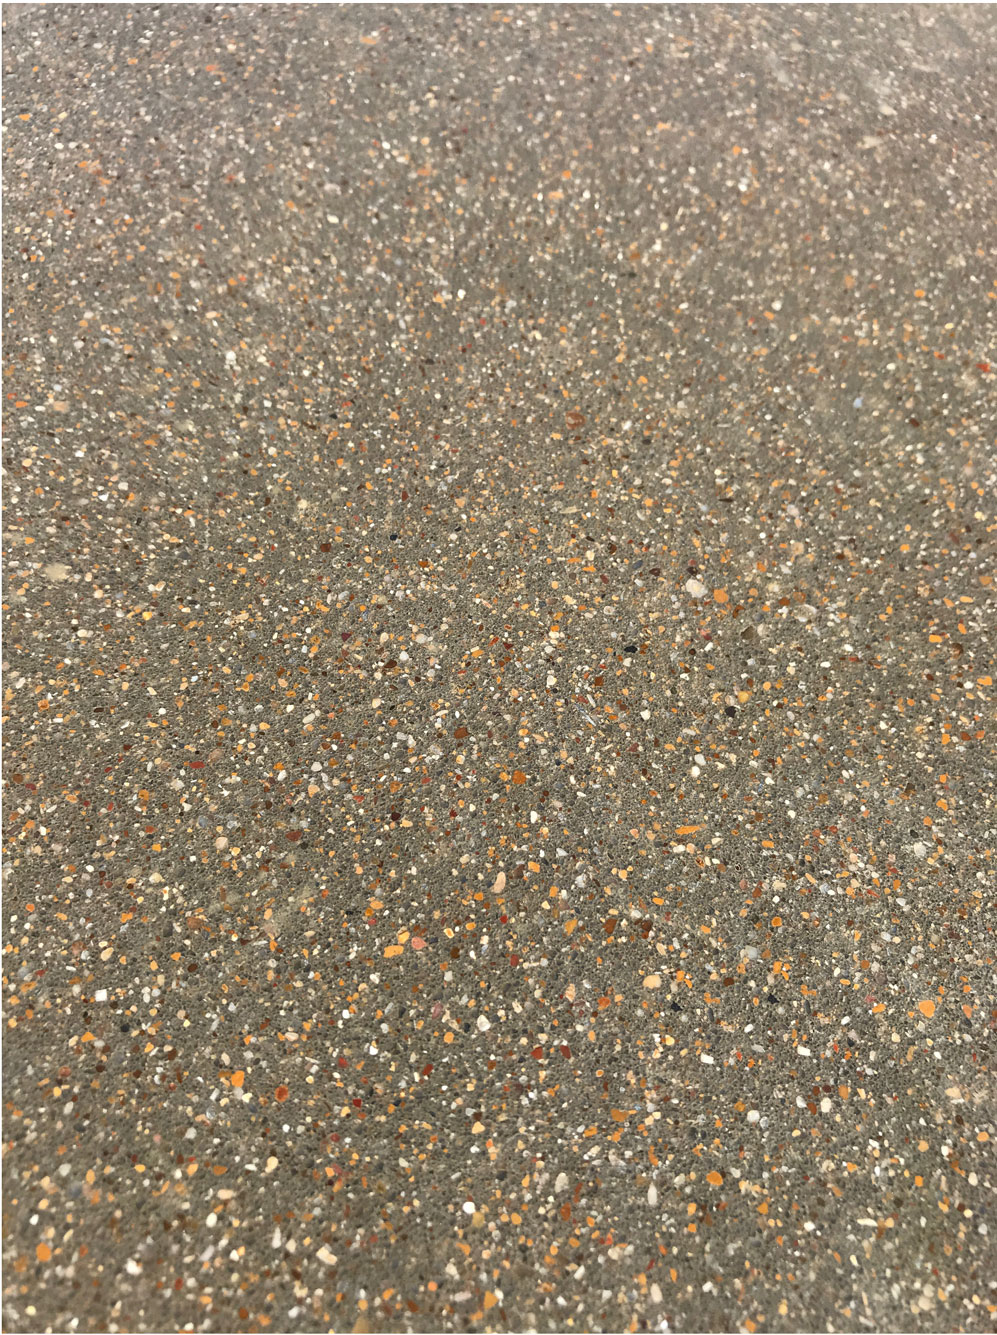 "Small aggregate exposure 'Class B"" Craftsman Concrete Floor. Picture taken after cut but before polish. This floor's dark color is due to it's 10% fly ash content. The aggregate used is 'native' rock. Notice the bright colors and consistent exposure this rock facilitates."